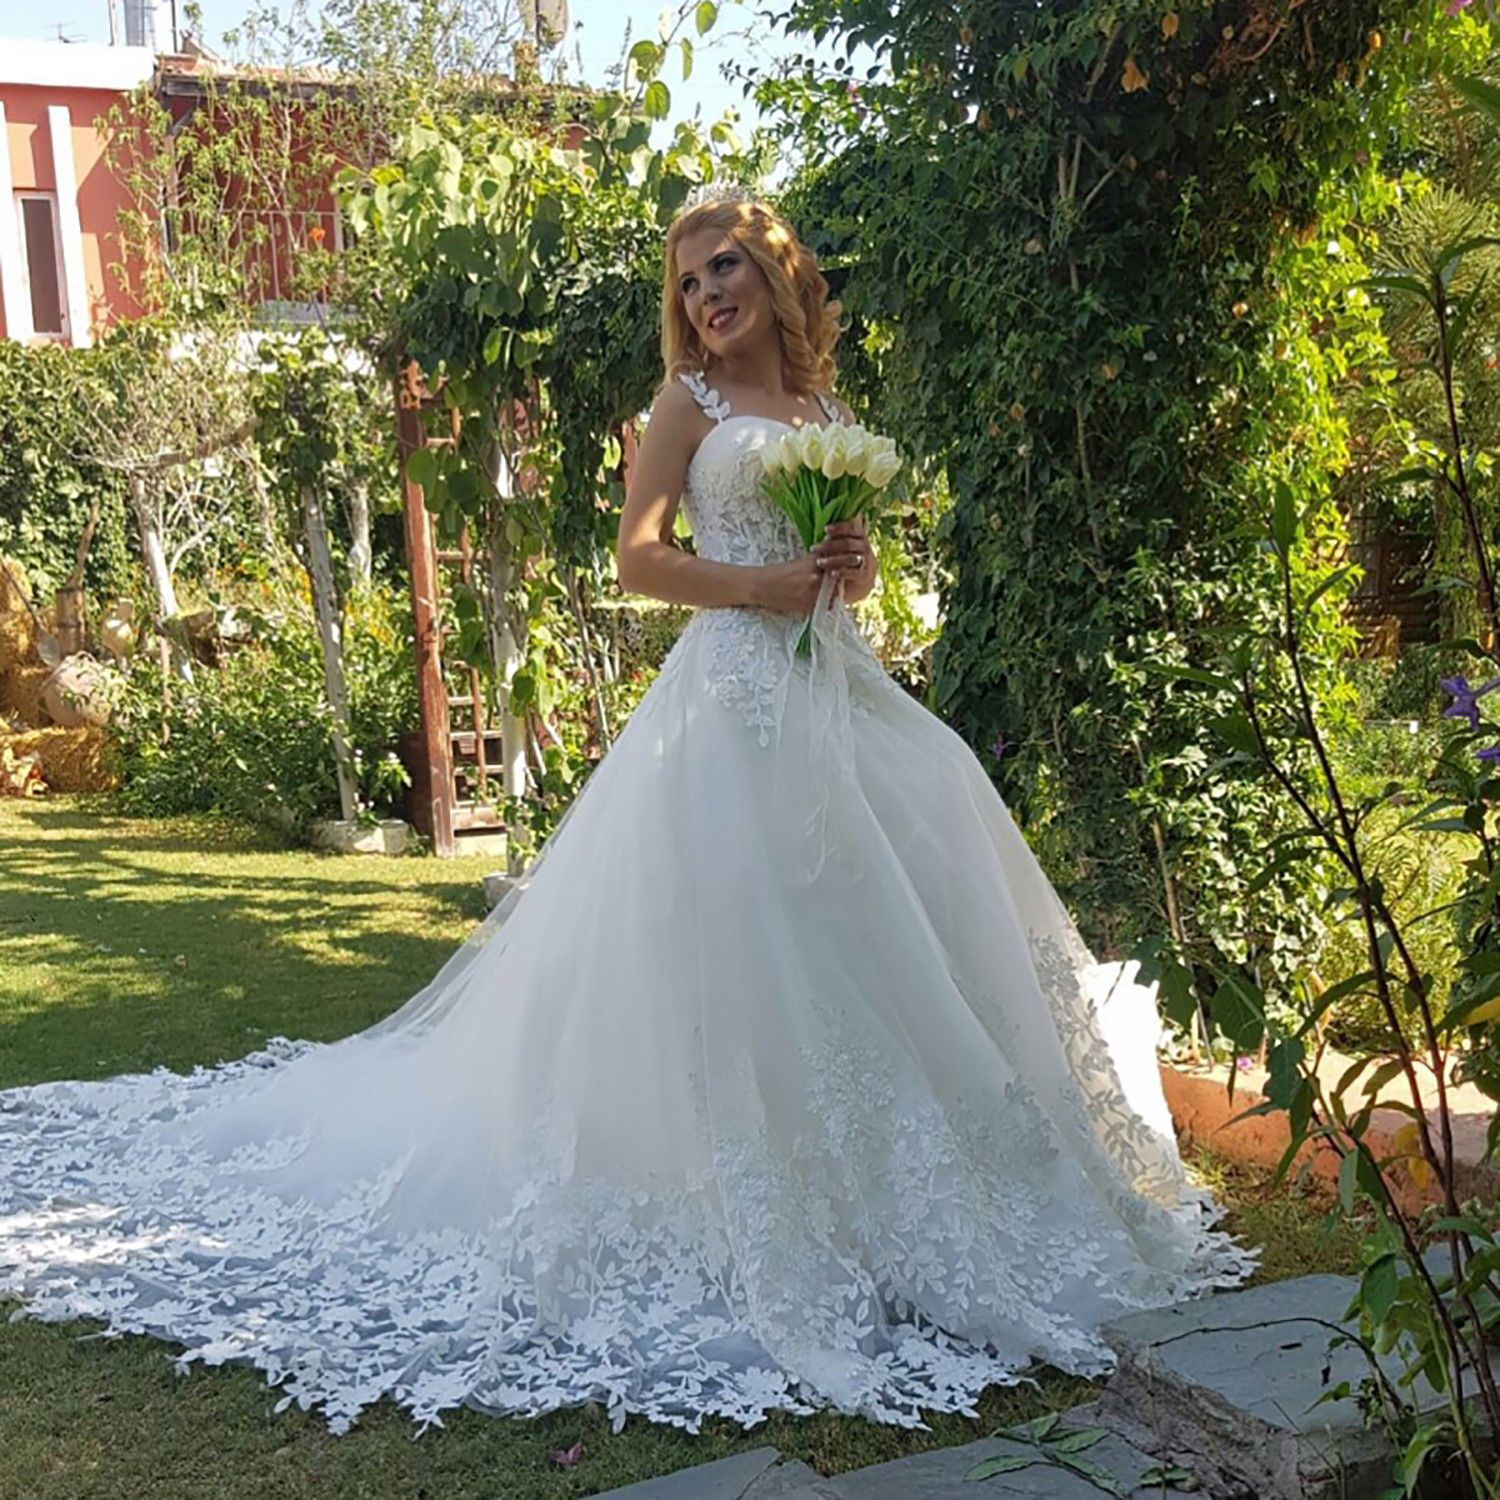 2018 New Lace Wedding Dress Sleeveless Bridal Gowns Size 4 6 8 10 12 ...